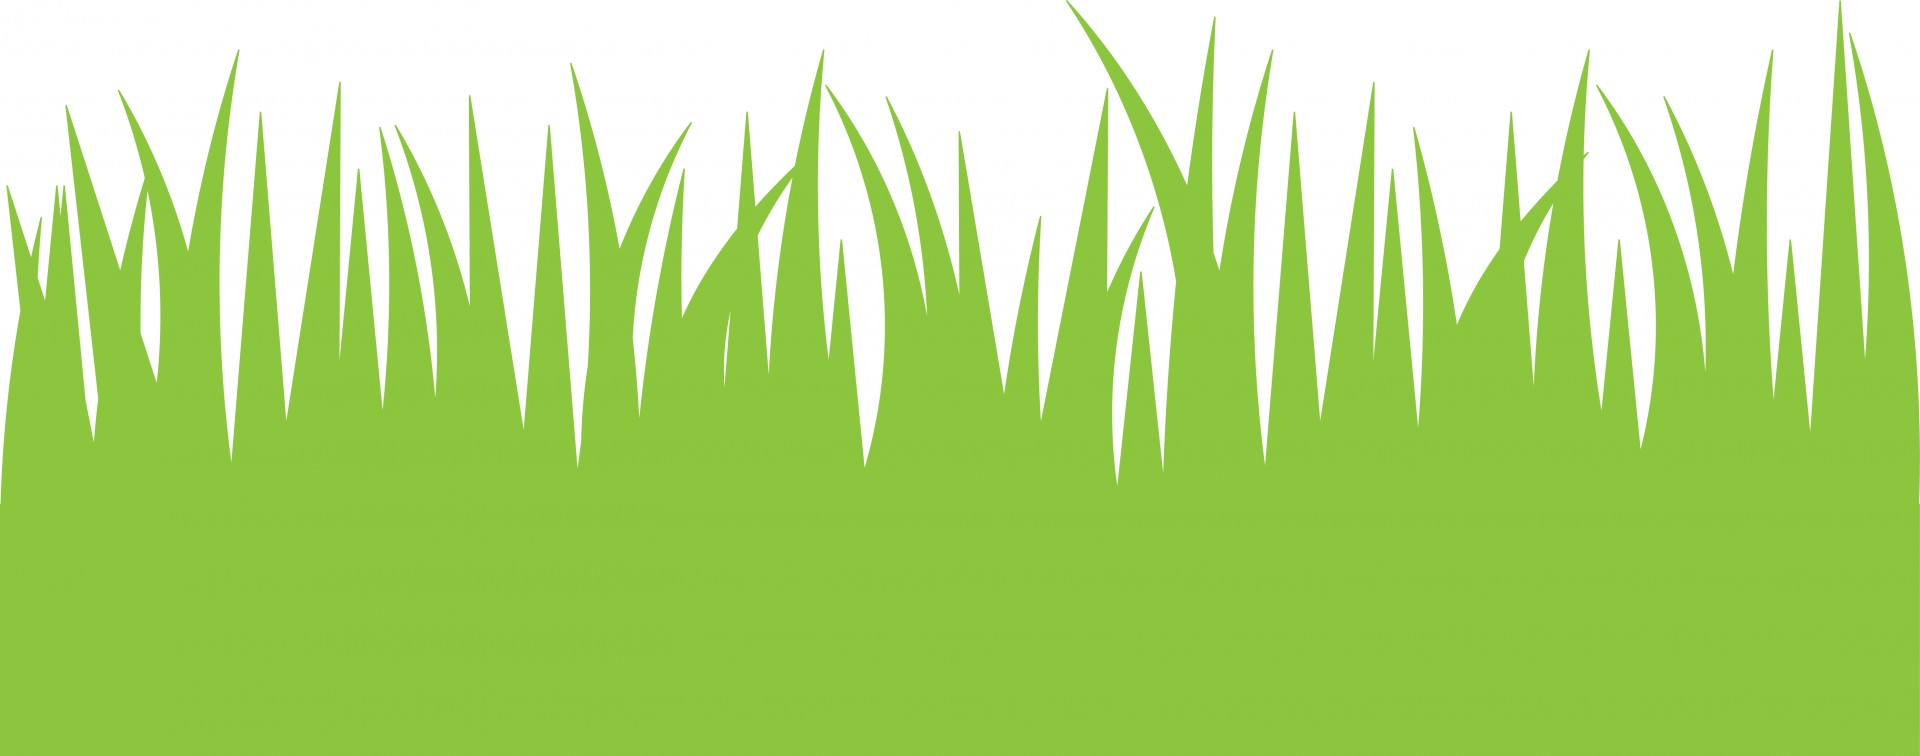 hight resolution of green grass clipart free stock photo